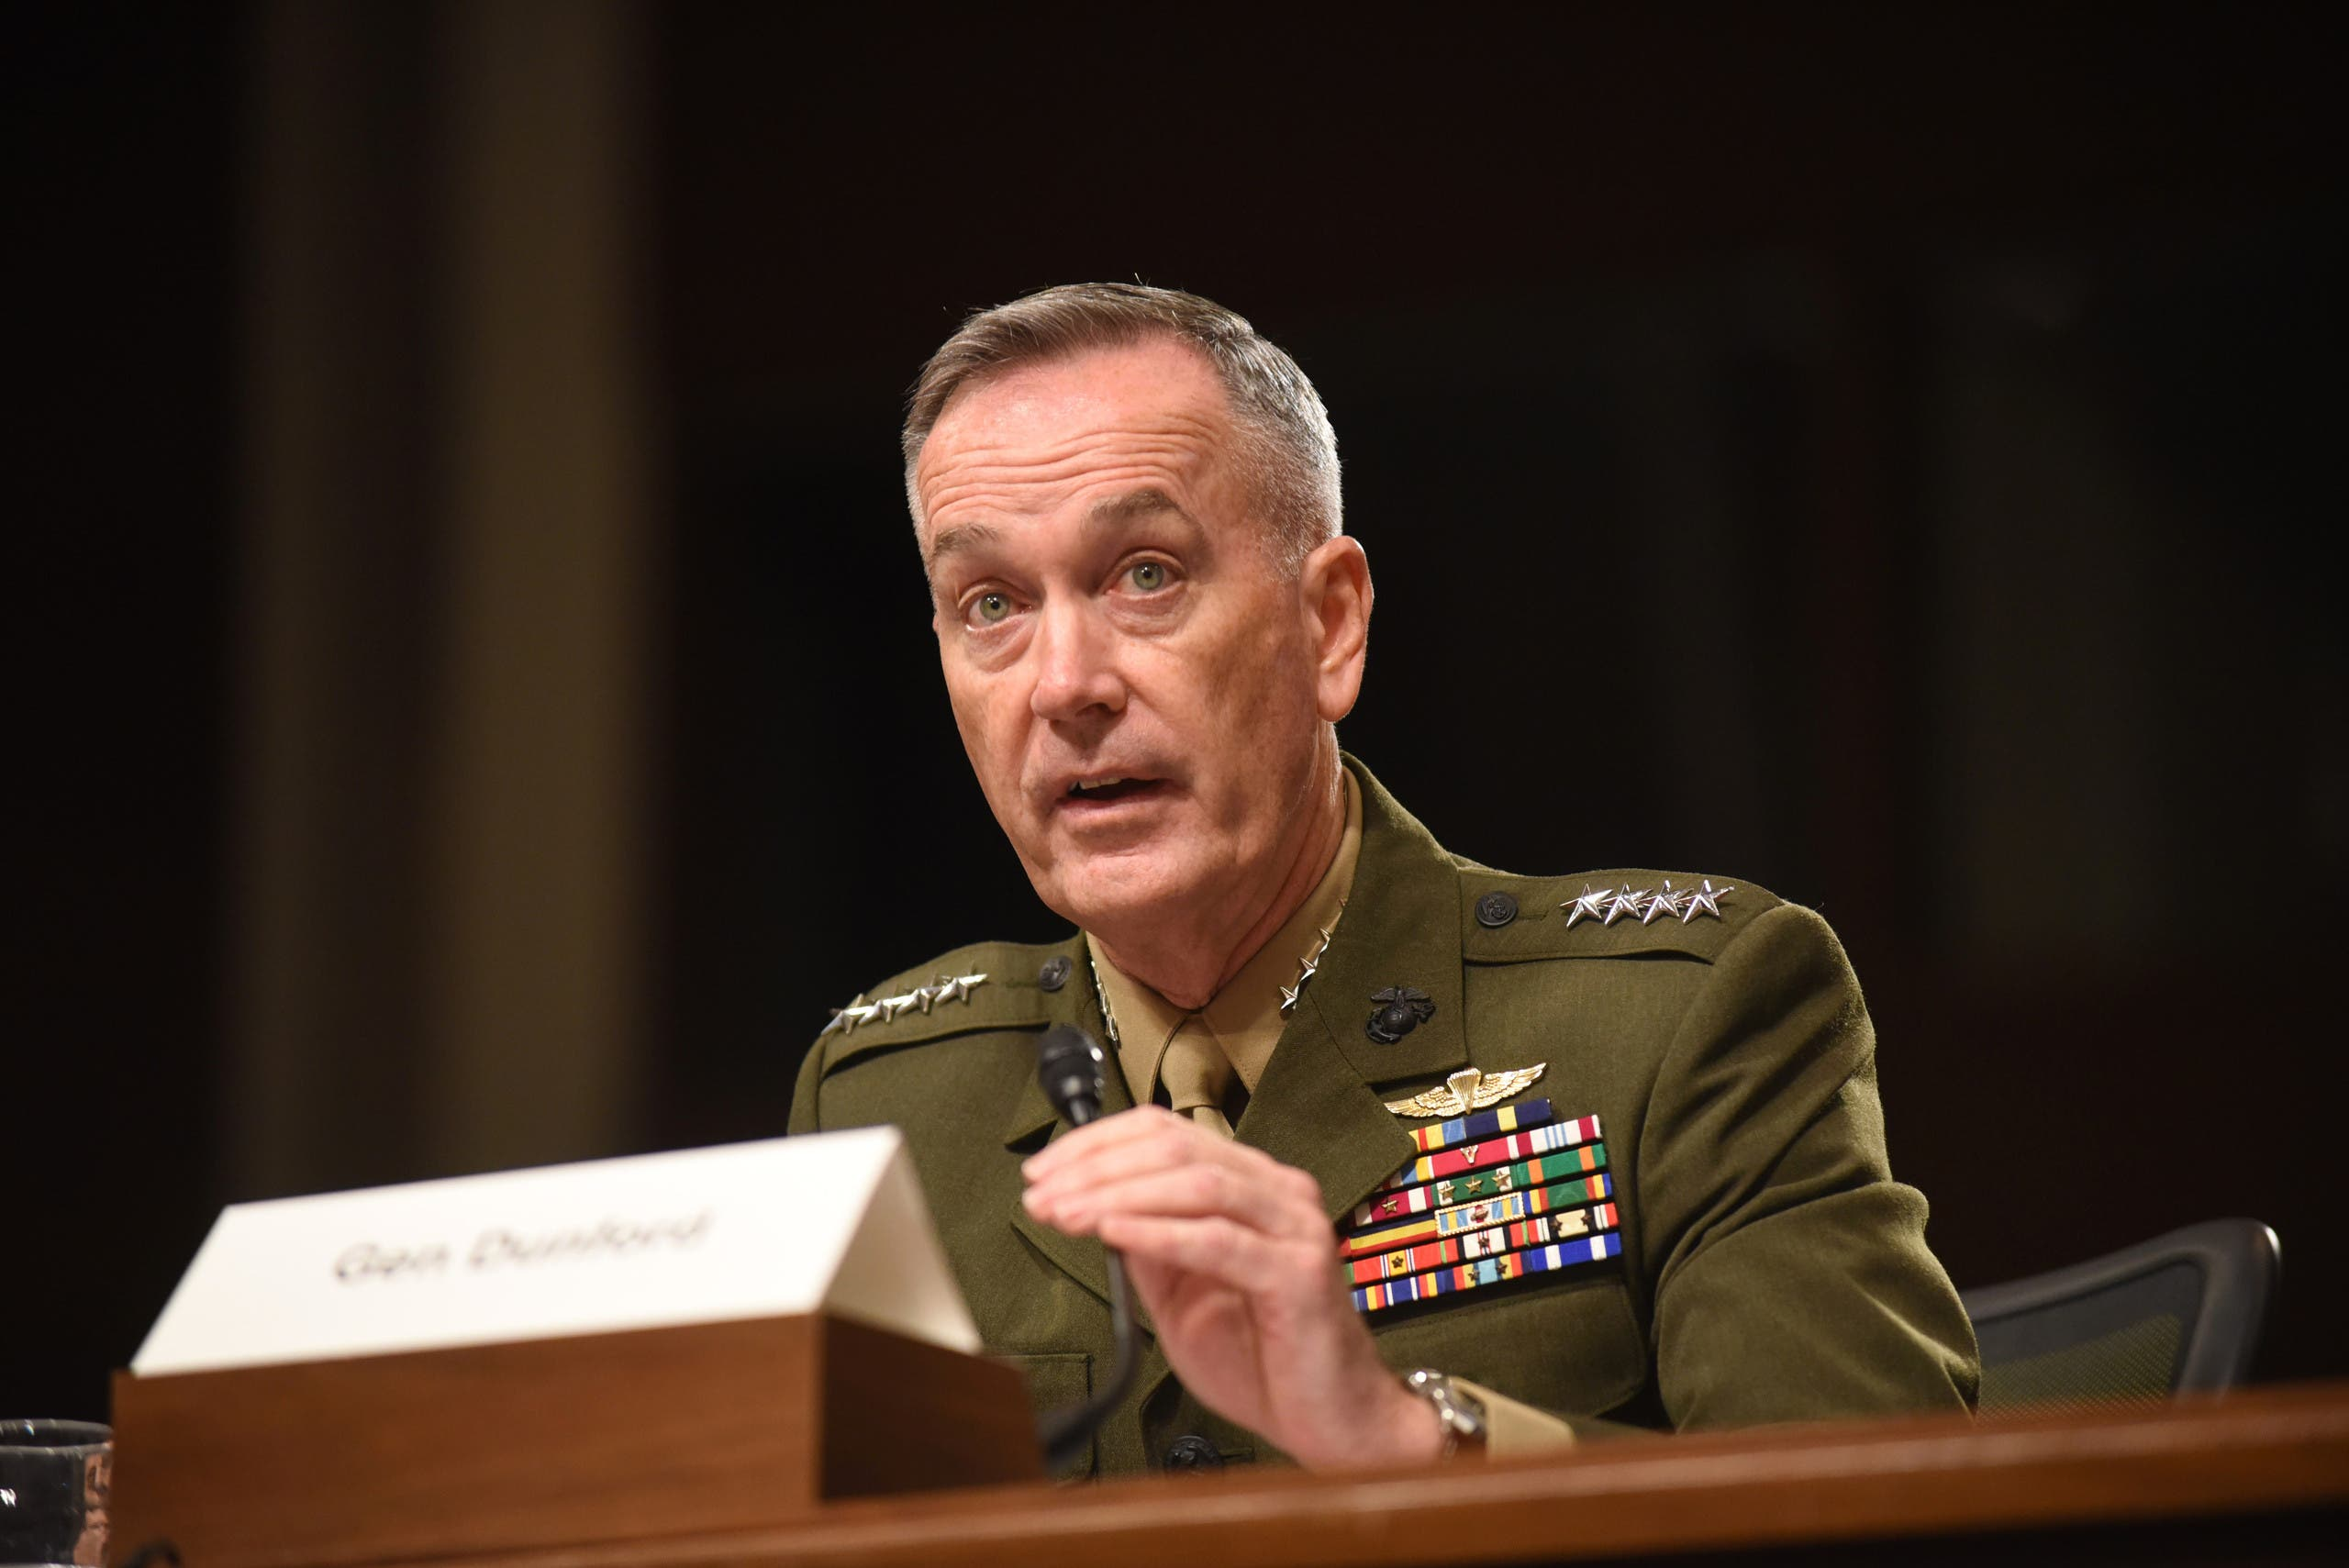 General Joe Dunford (pictured), who is chairman of the Joint Chiefs of Staff and serves as the top military advisor to Defense Secretary Ash Carter. (File photo: AP)